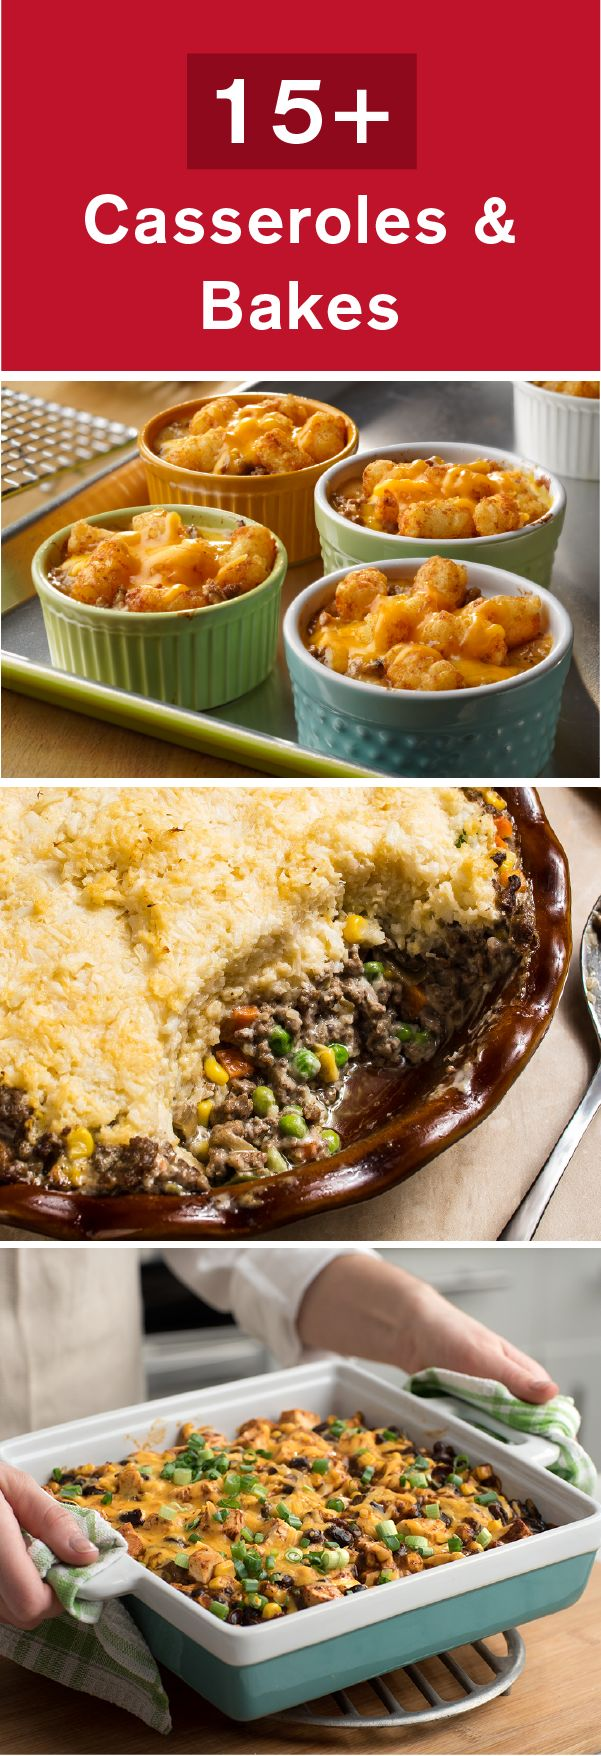 These savory golden-brown creations are simply outstanding! With dinner ideas including, Farfalle and Tuna Casserole, Savory Stuffed Peppers, and Quinoa Chile Rellenos, you'll come back to this collection of 15+ Casseroles and Bakes again and again.